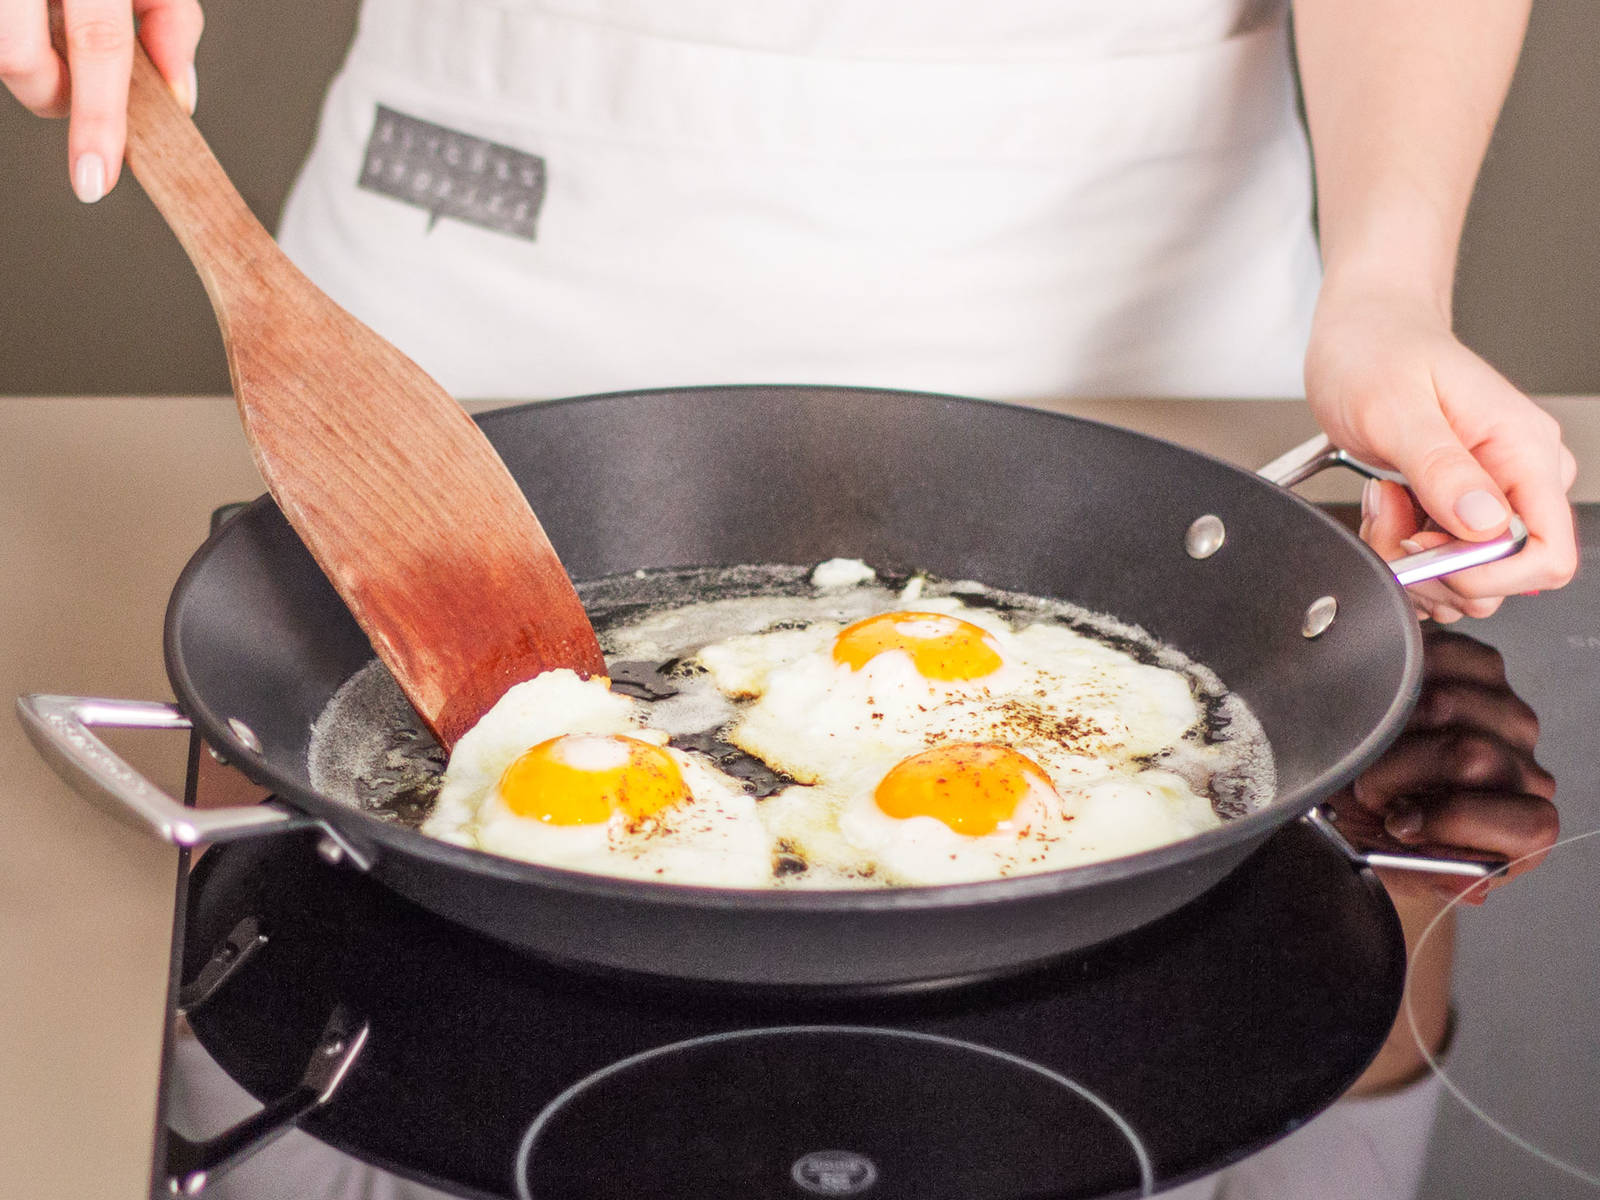 In a separate large frying pan, fry eggs in some vegetable oil over medium heat for approx. 2 – 4 min. until whites are opaque and yolks begin to set. Then, transfer fried eggs to pan with meatballs. Enjoy with a side of our signature hot chili sauce!